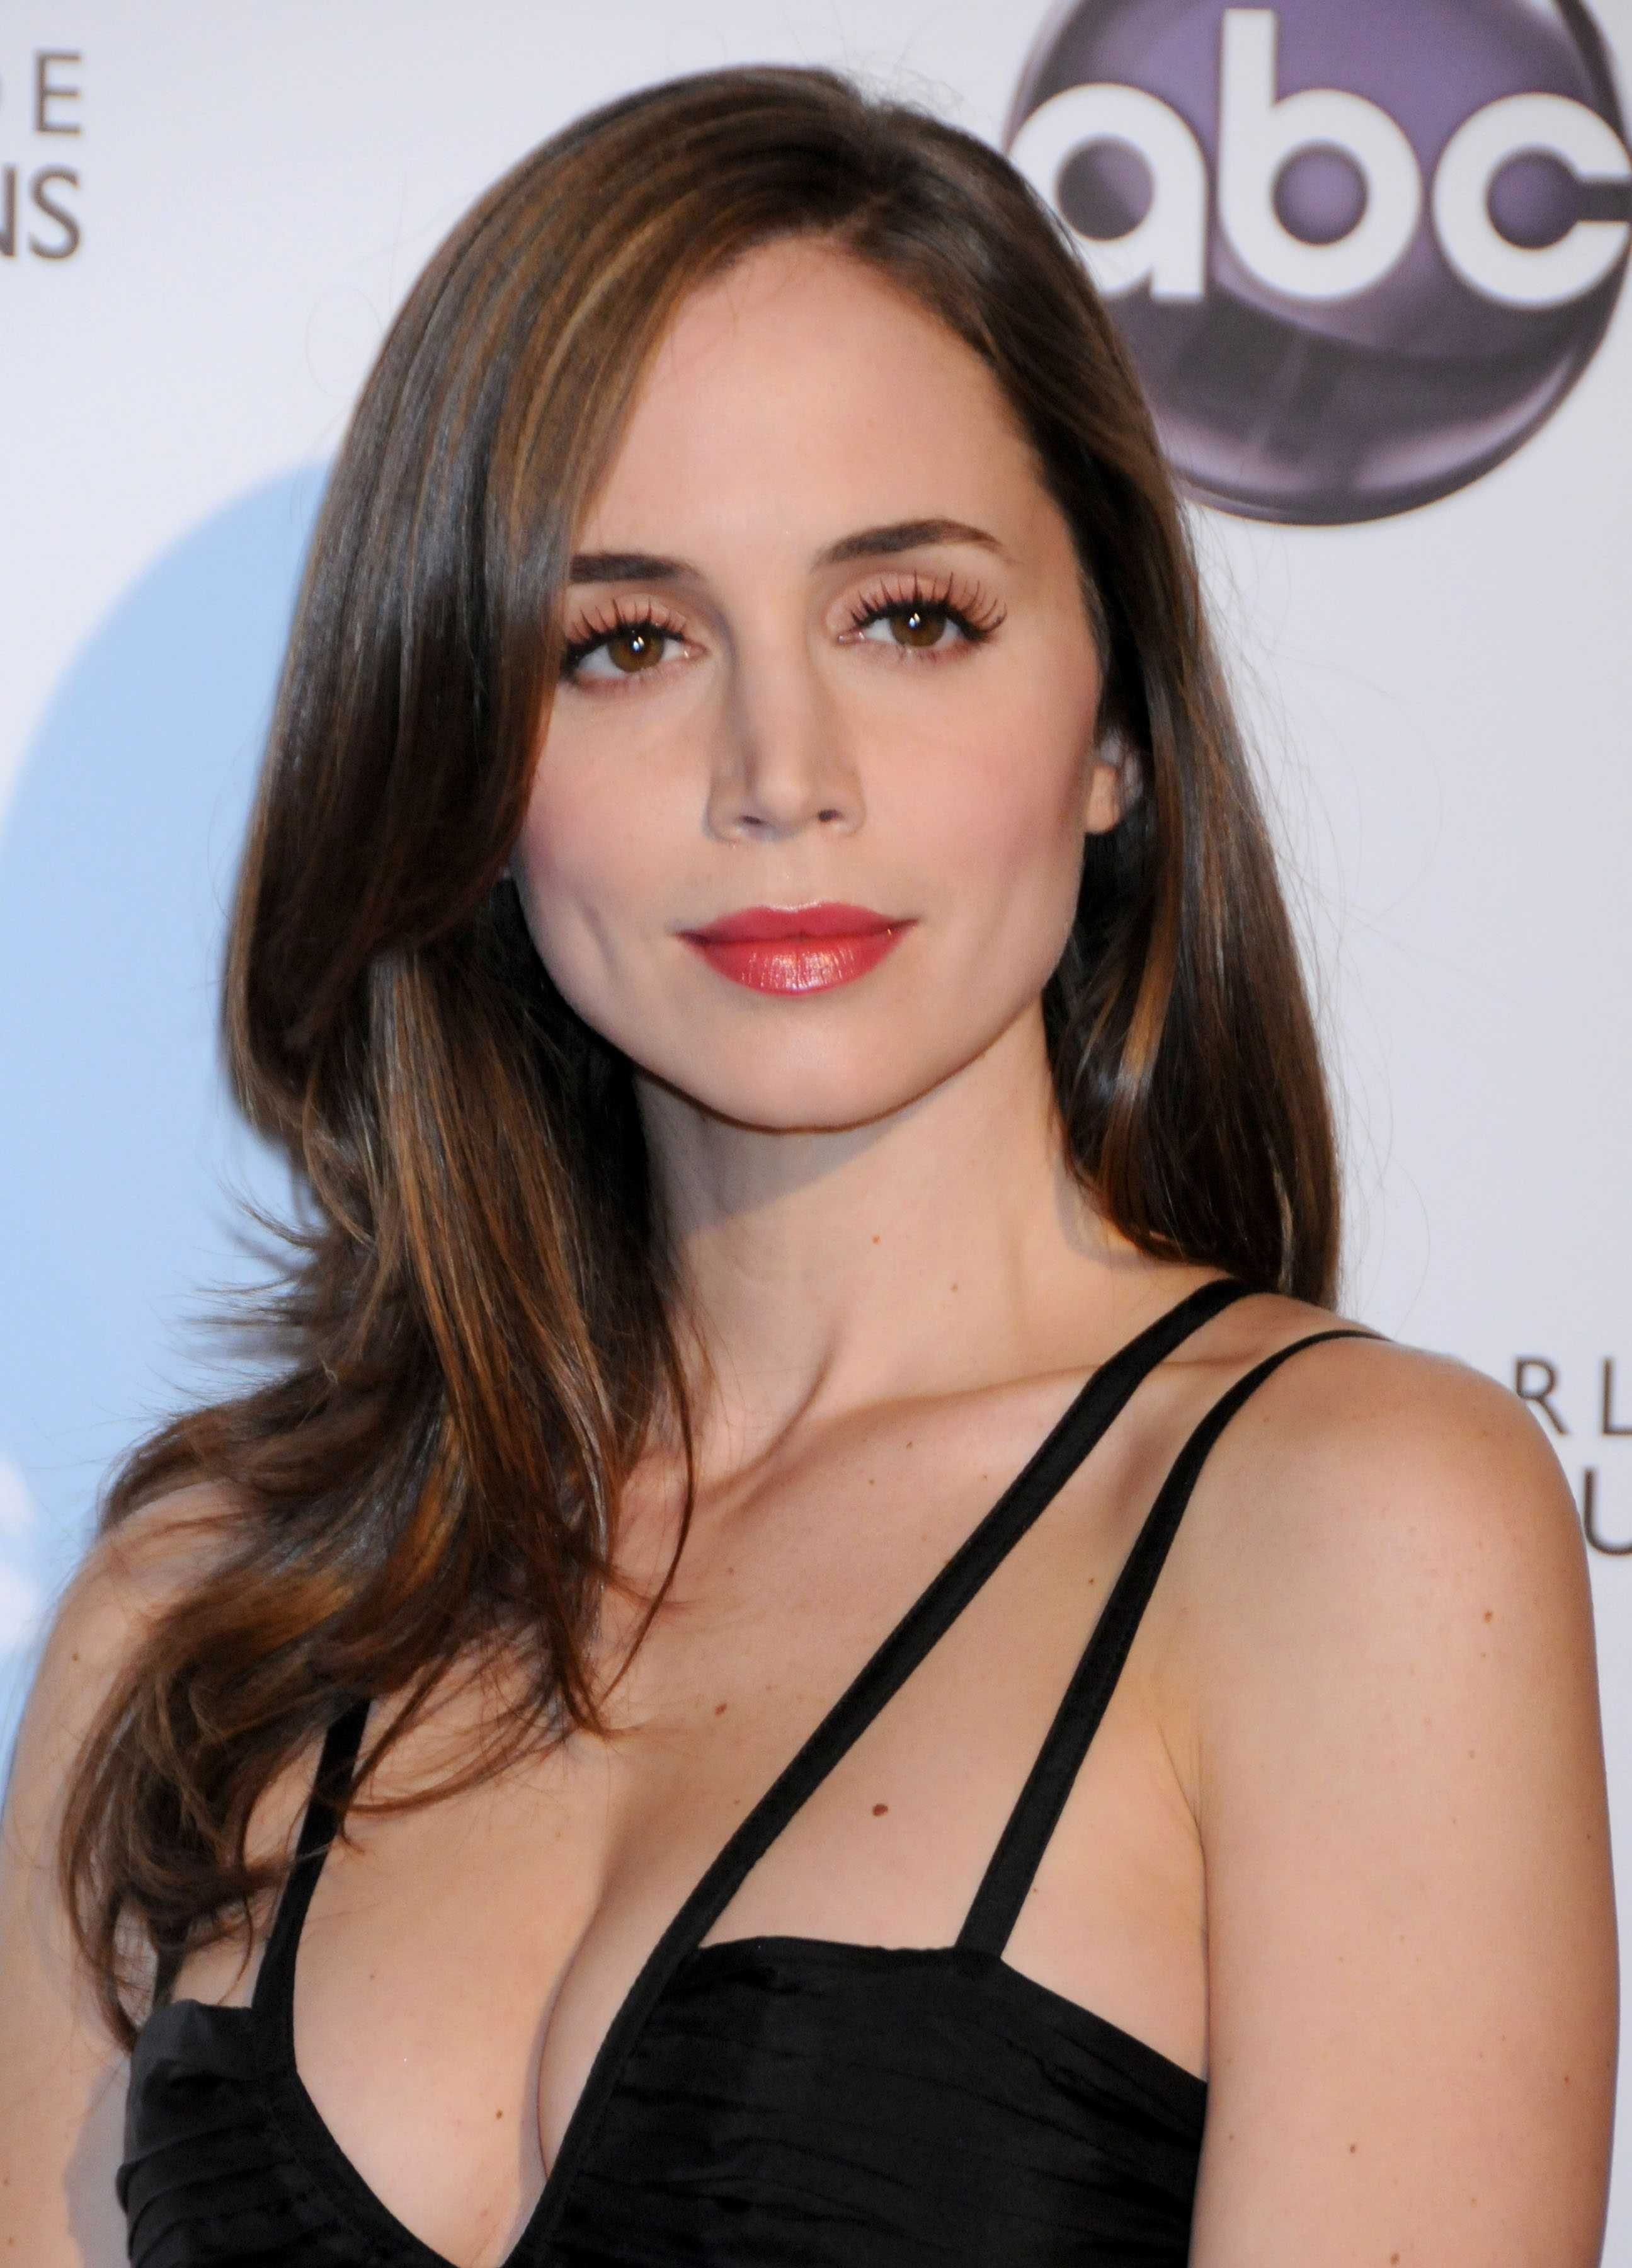 2019 Eliza Dushku nudes (39 foto and video), Tits, Fappening, Twitter, butt 2015